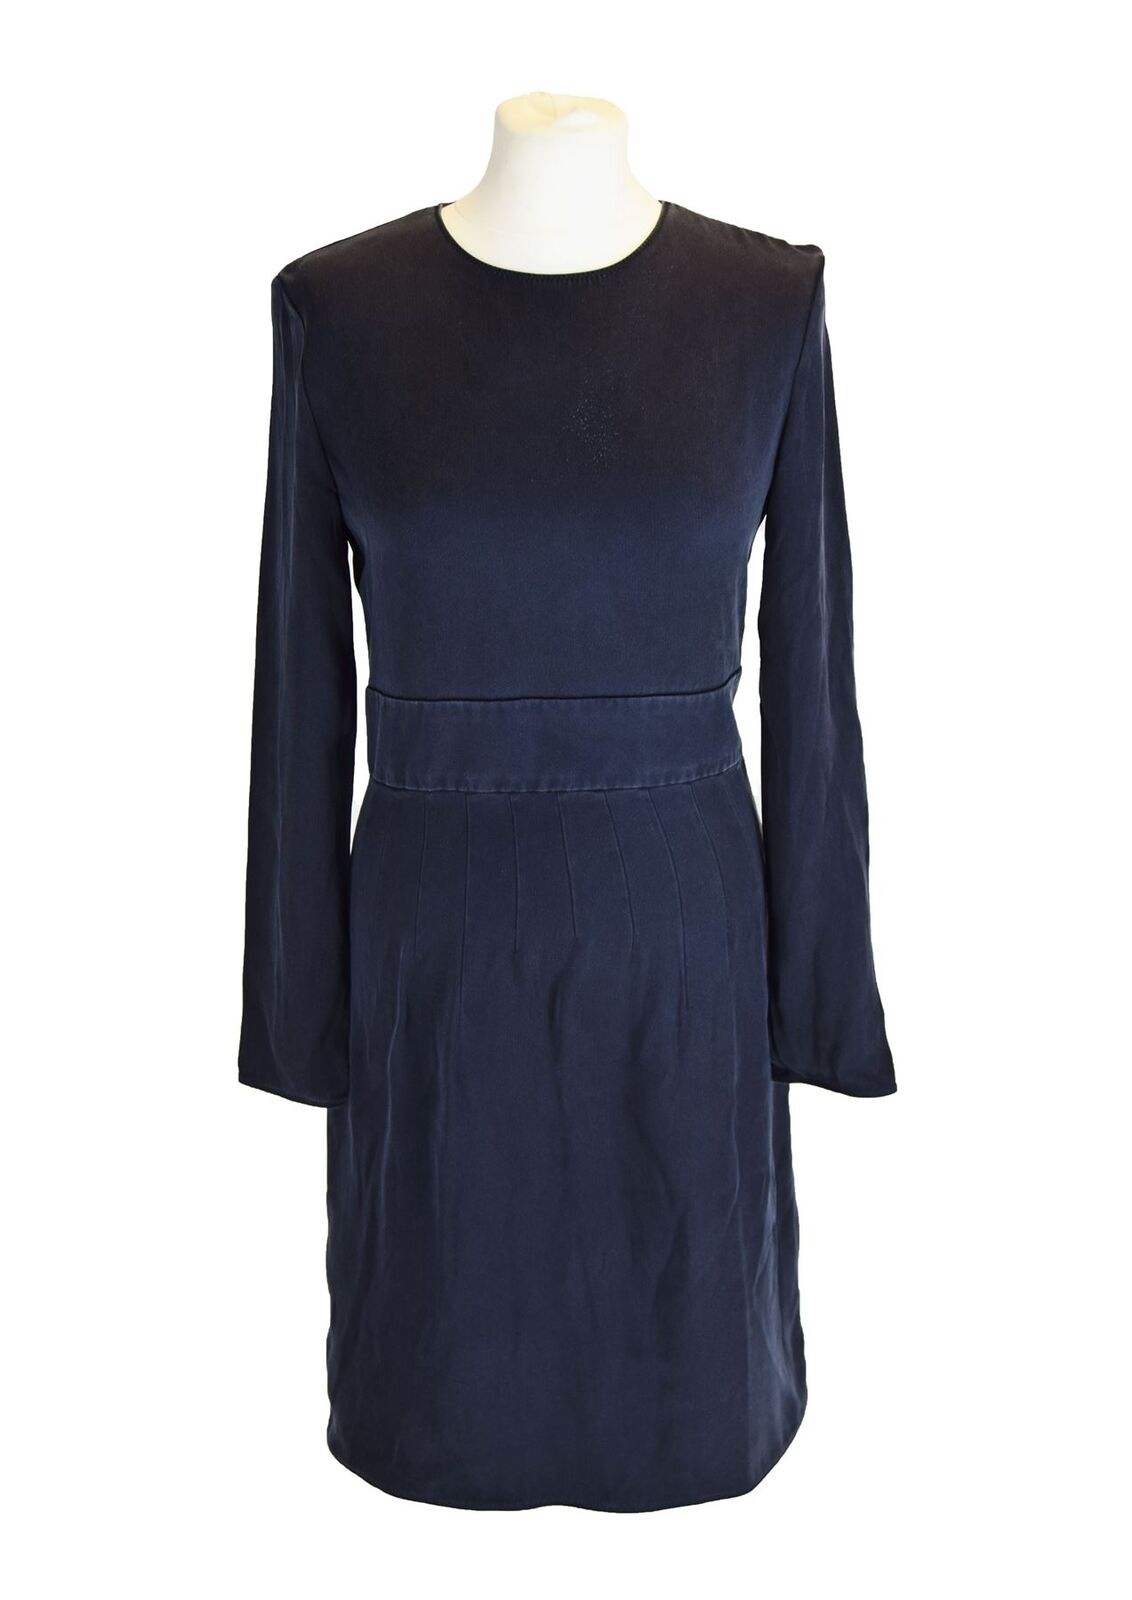 CELINE Blau 100% Silk Dress, UK 10 US 6 EU 38